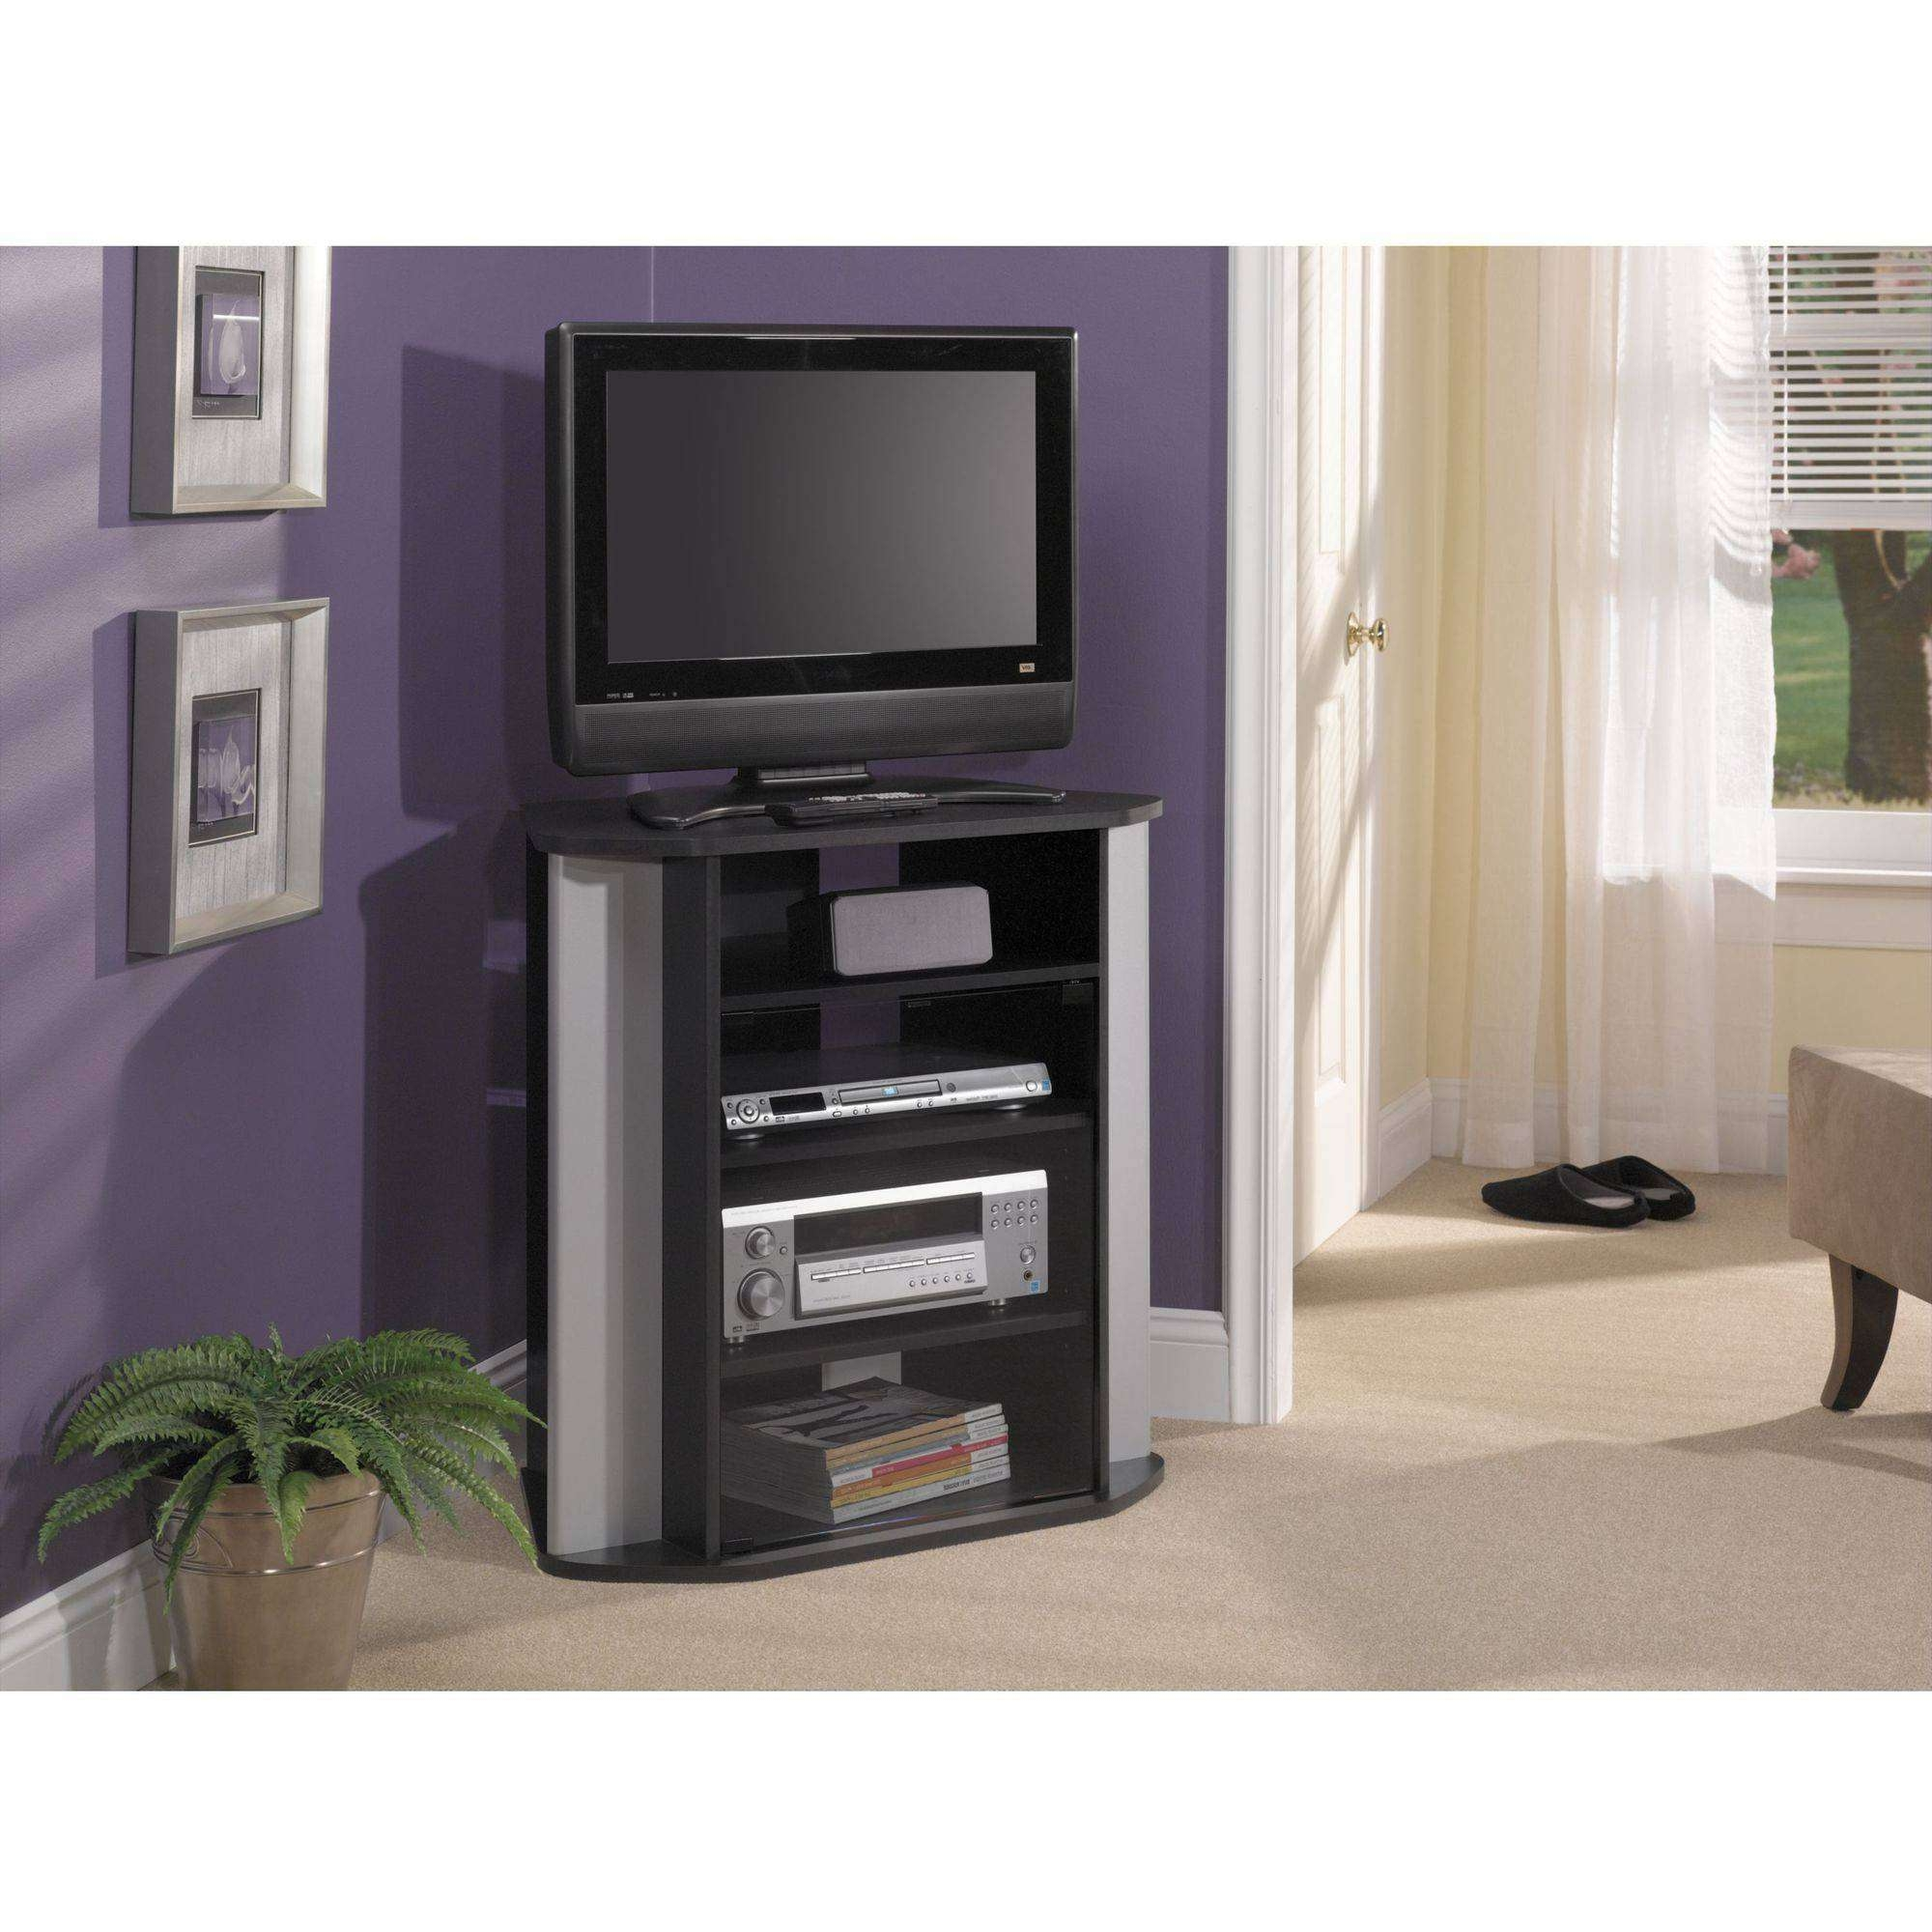 Best Corner Tv Stands For 50 Inch Tv 57 On Home Improvement Ideas With Corner Tv Stands For 50 Inch Tv (View 6 of 20)